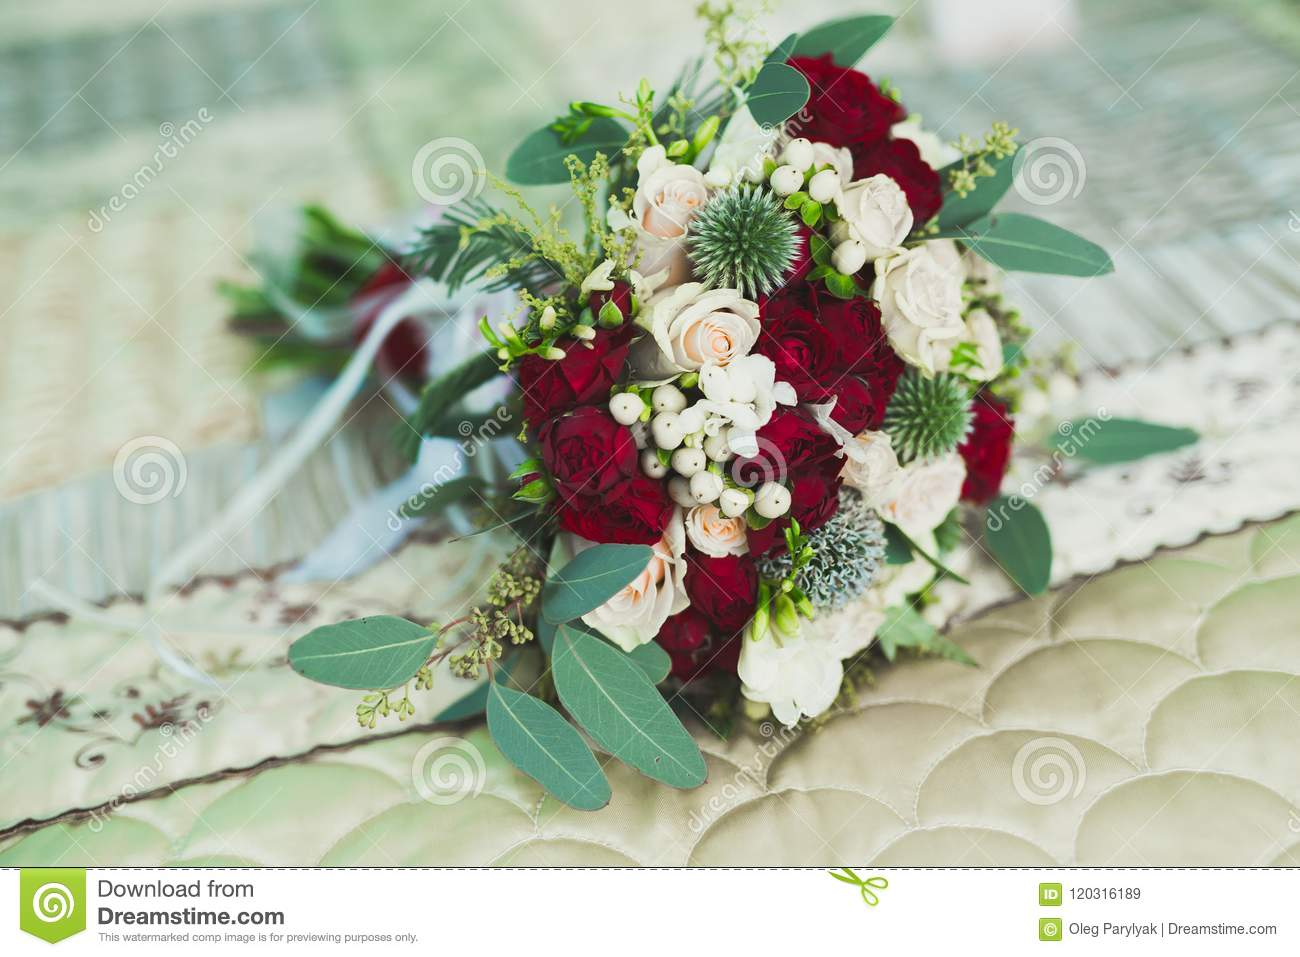 Wonderful luxury wedding bouquet of different flowers stock image wonderful luxury wedding bouquet of different flowers izmirmasajfo